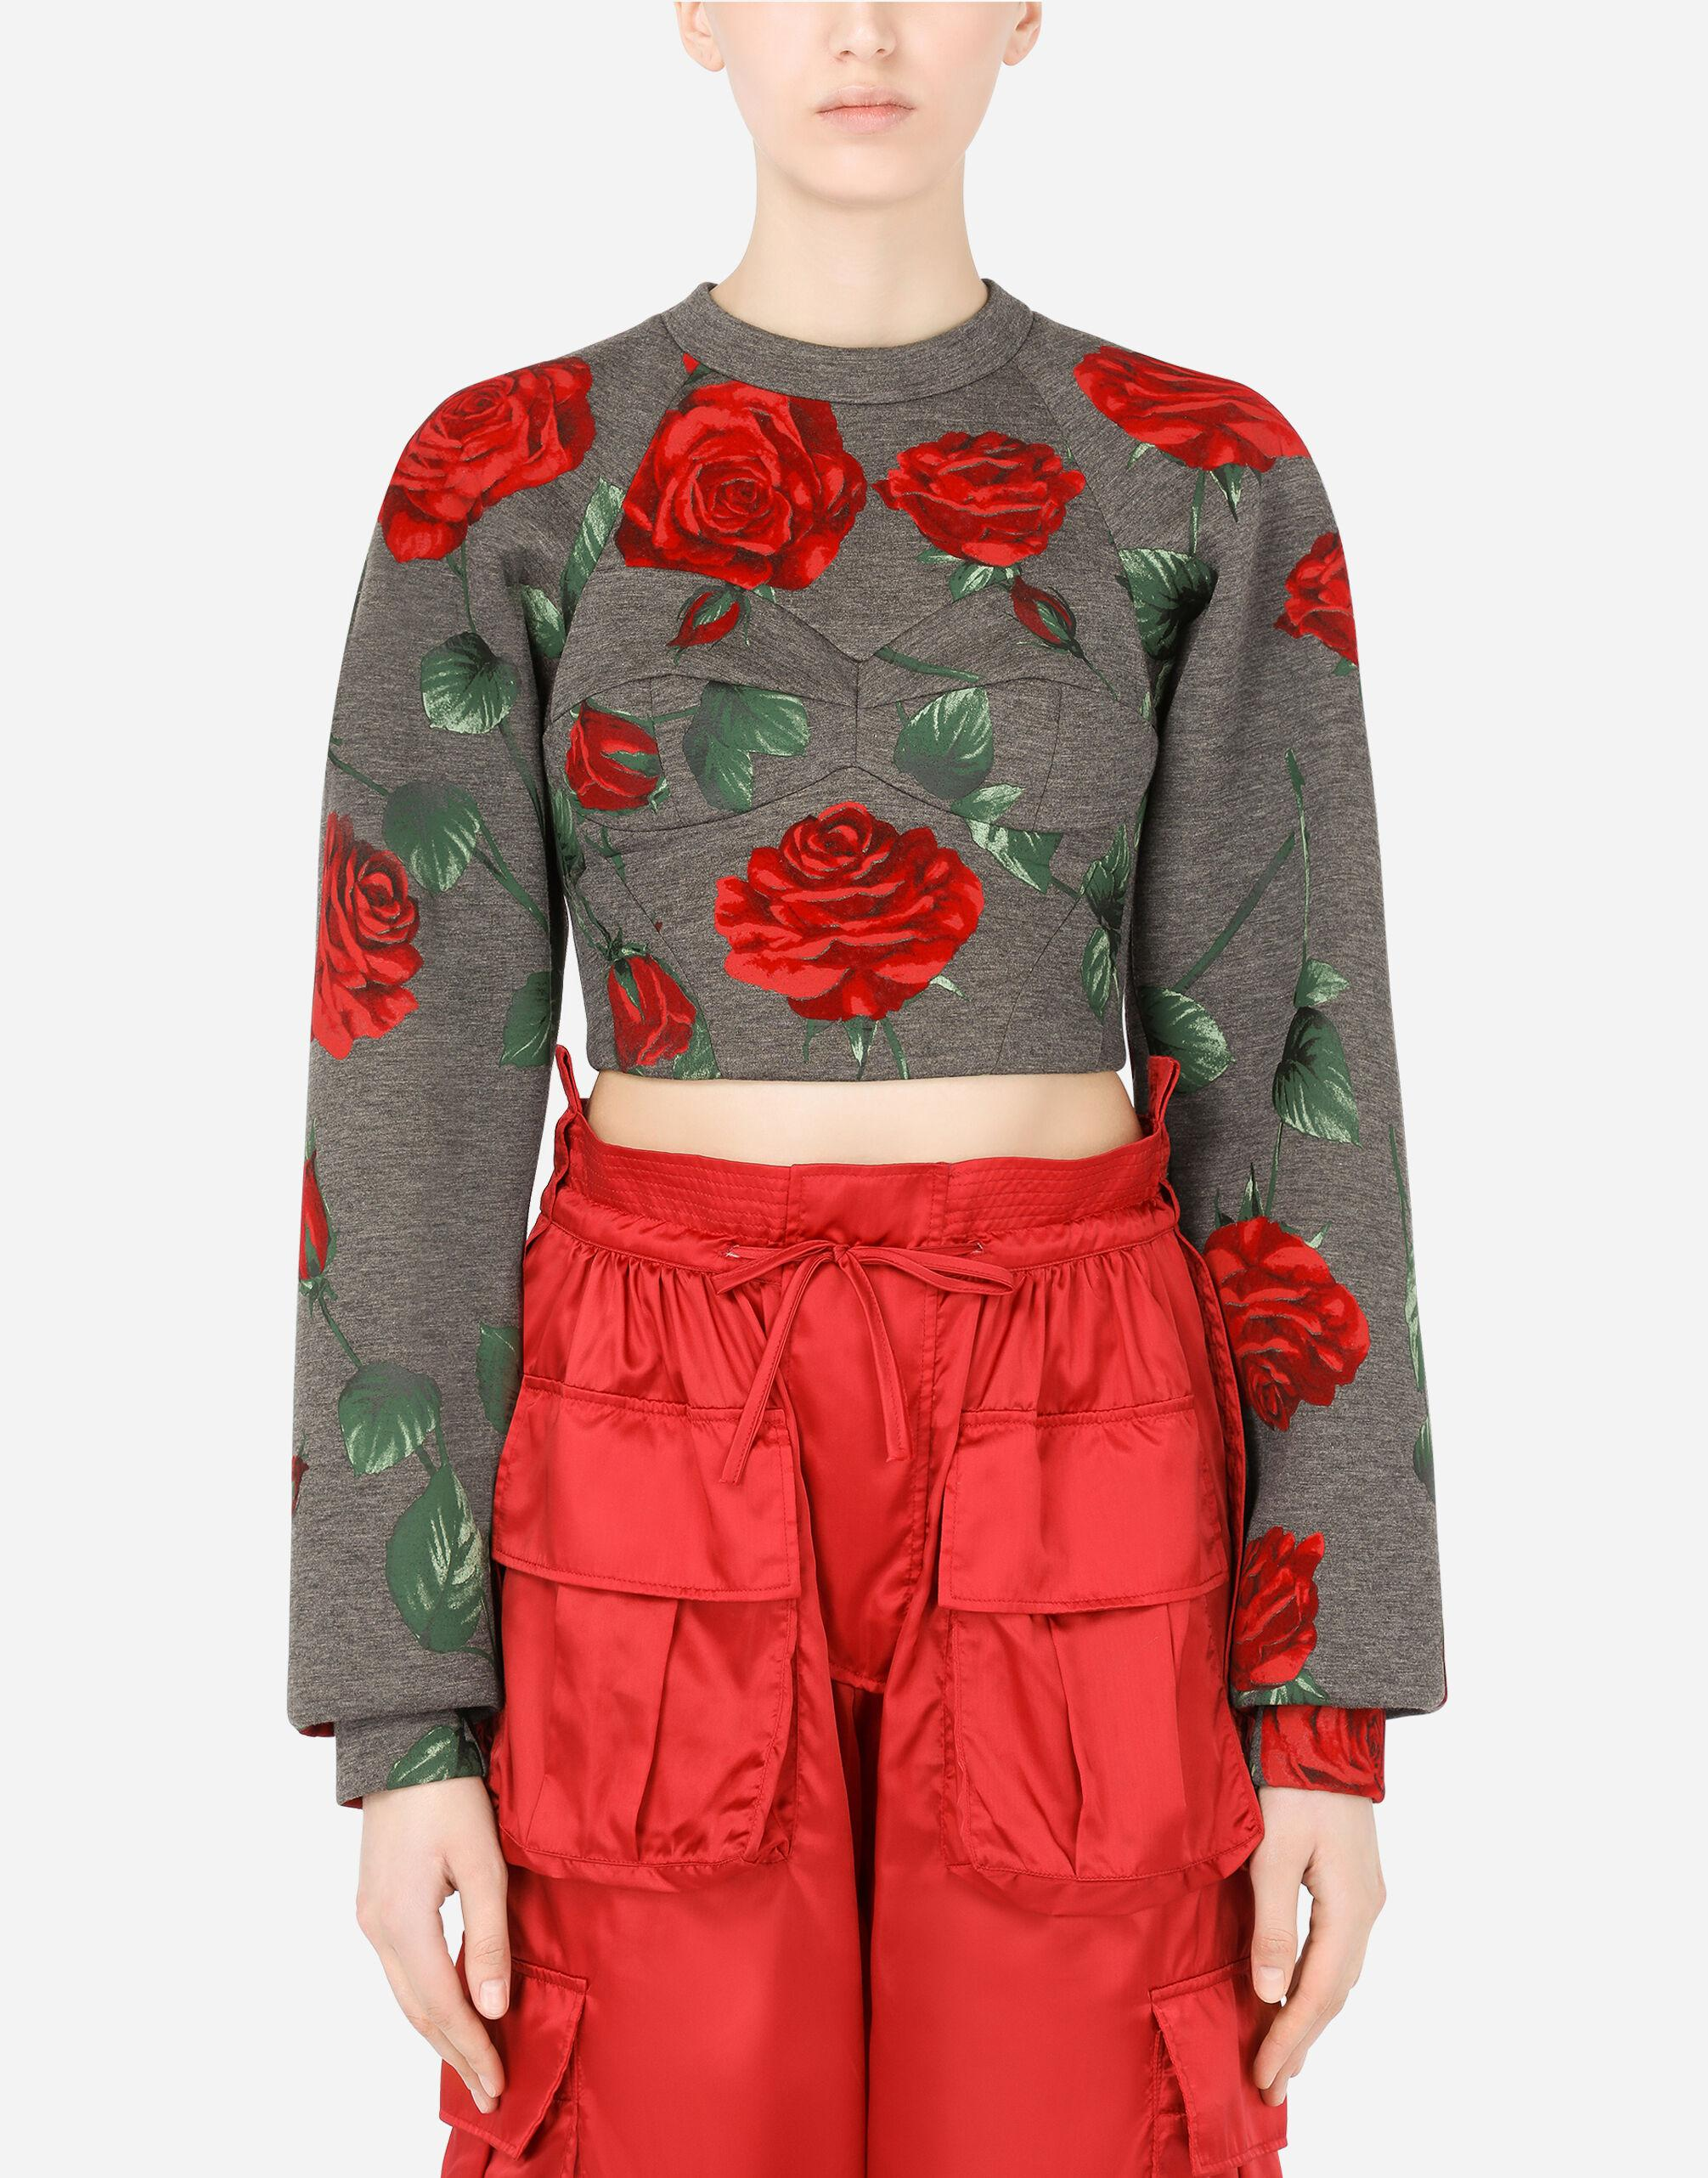 Technical jersey sweatshirt with flocked rose print and bustier details